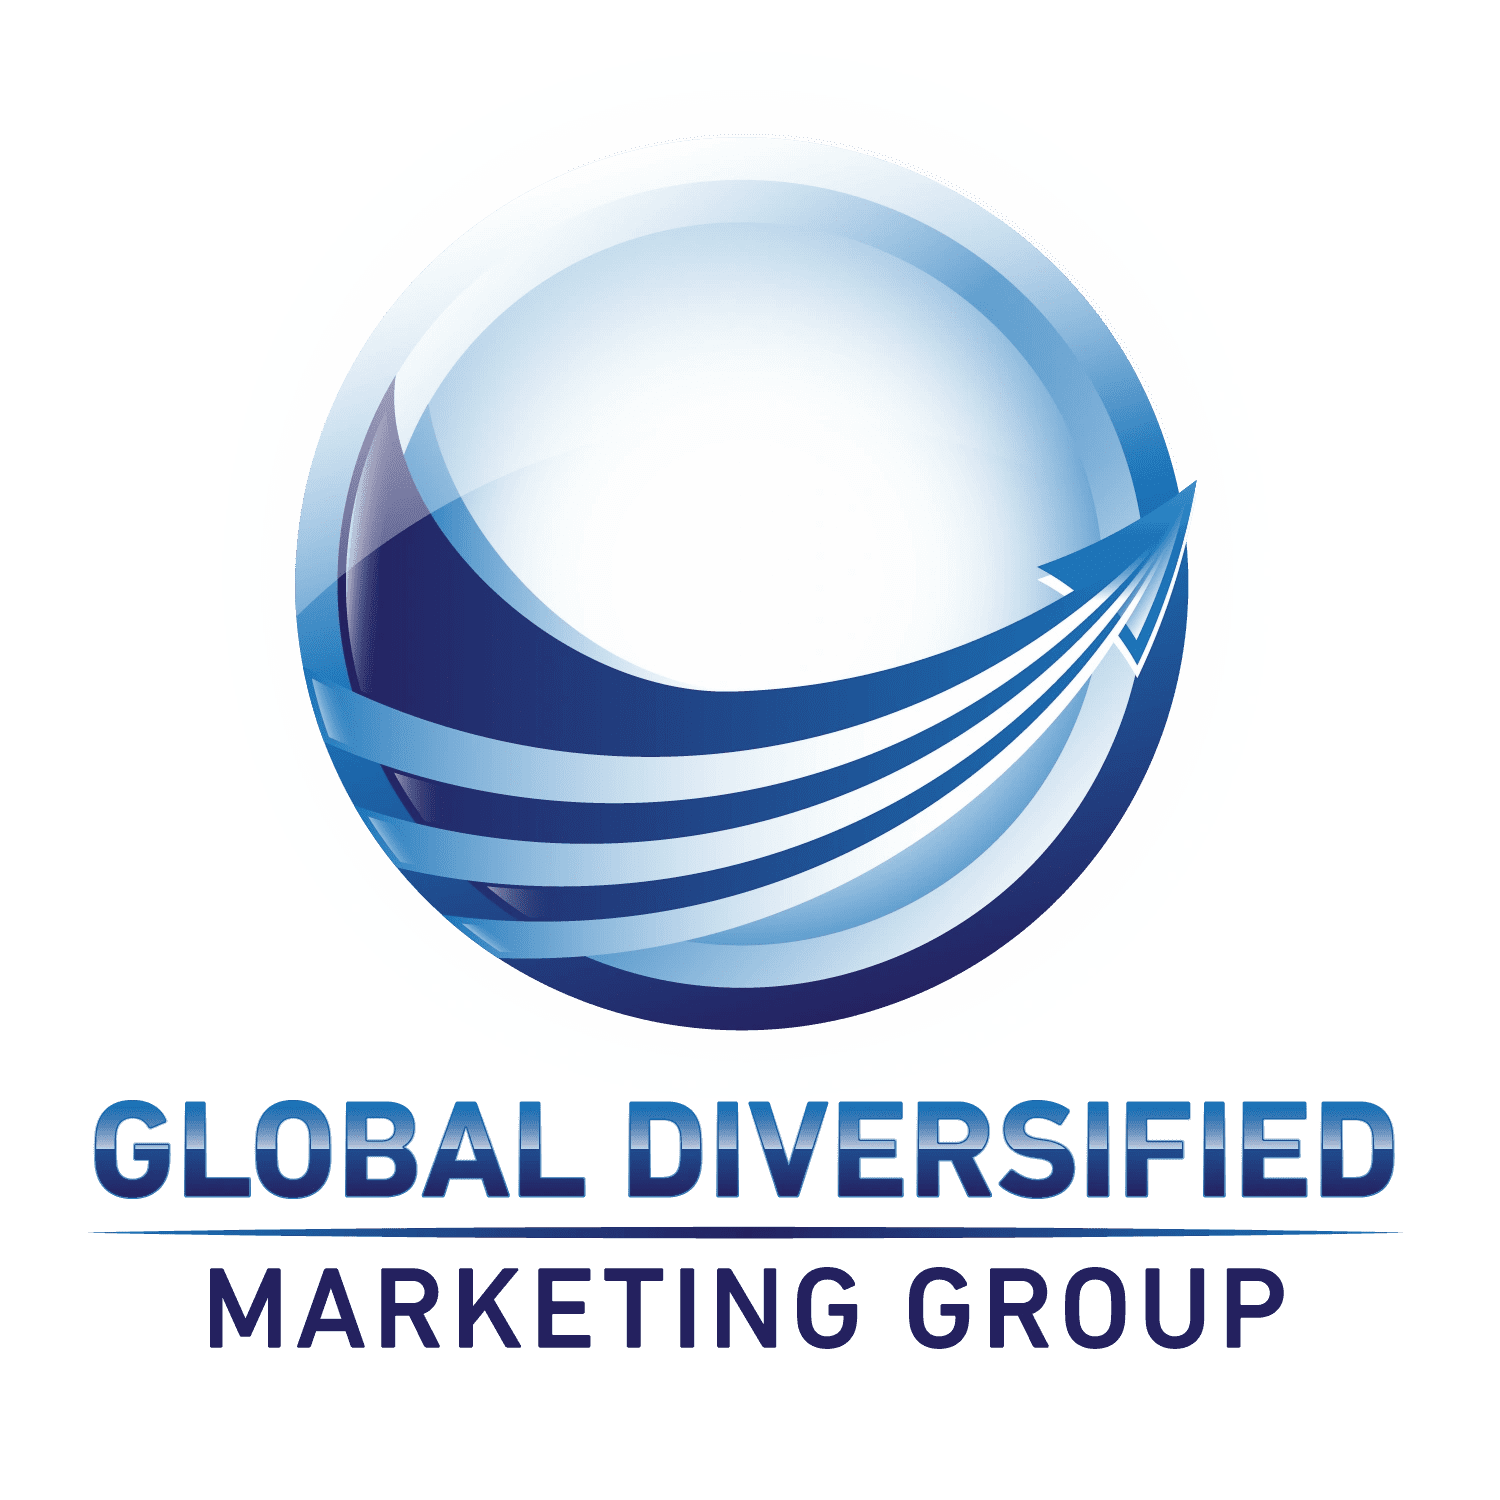 Global Diversified Marketing Group (Stock Symbol: GDMK), Supplier of Premium Snacks, Sees 142% Revenue Growth in Q1